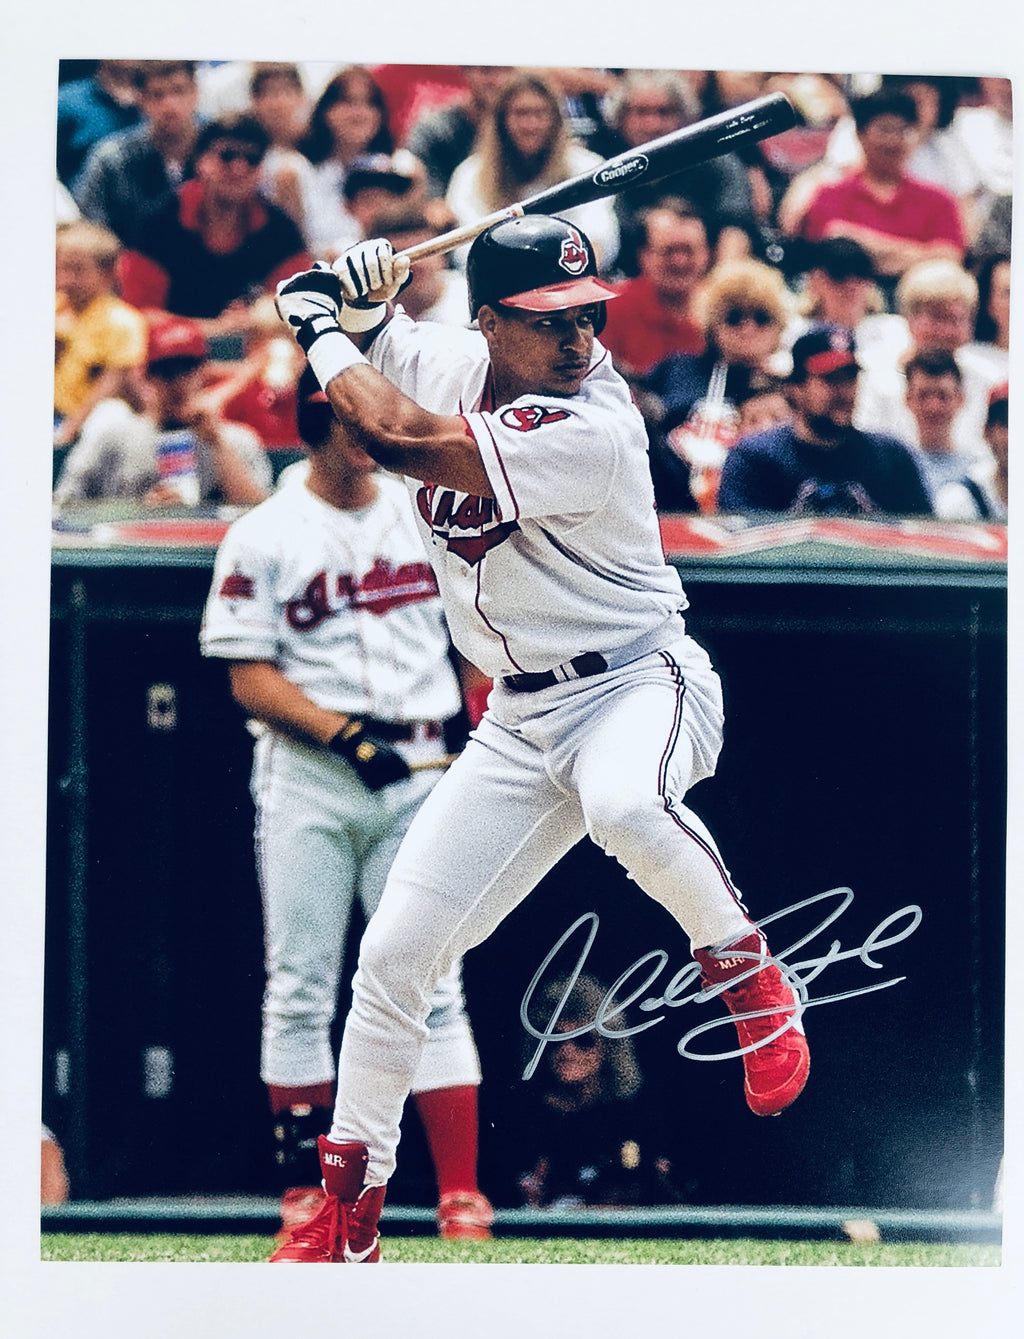 Manny Ramirez Autograph 8x10 Photo with COA